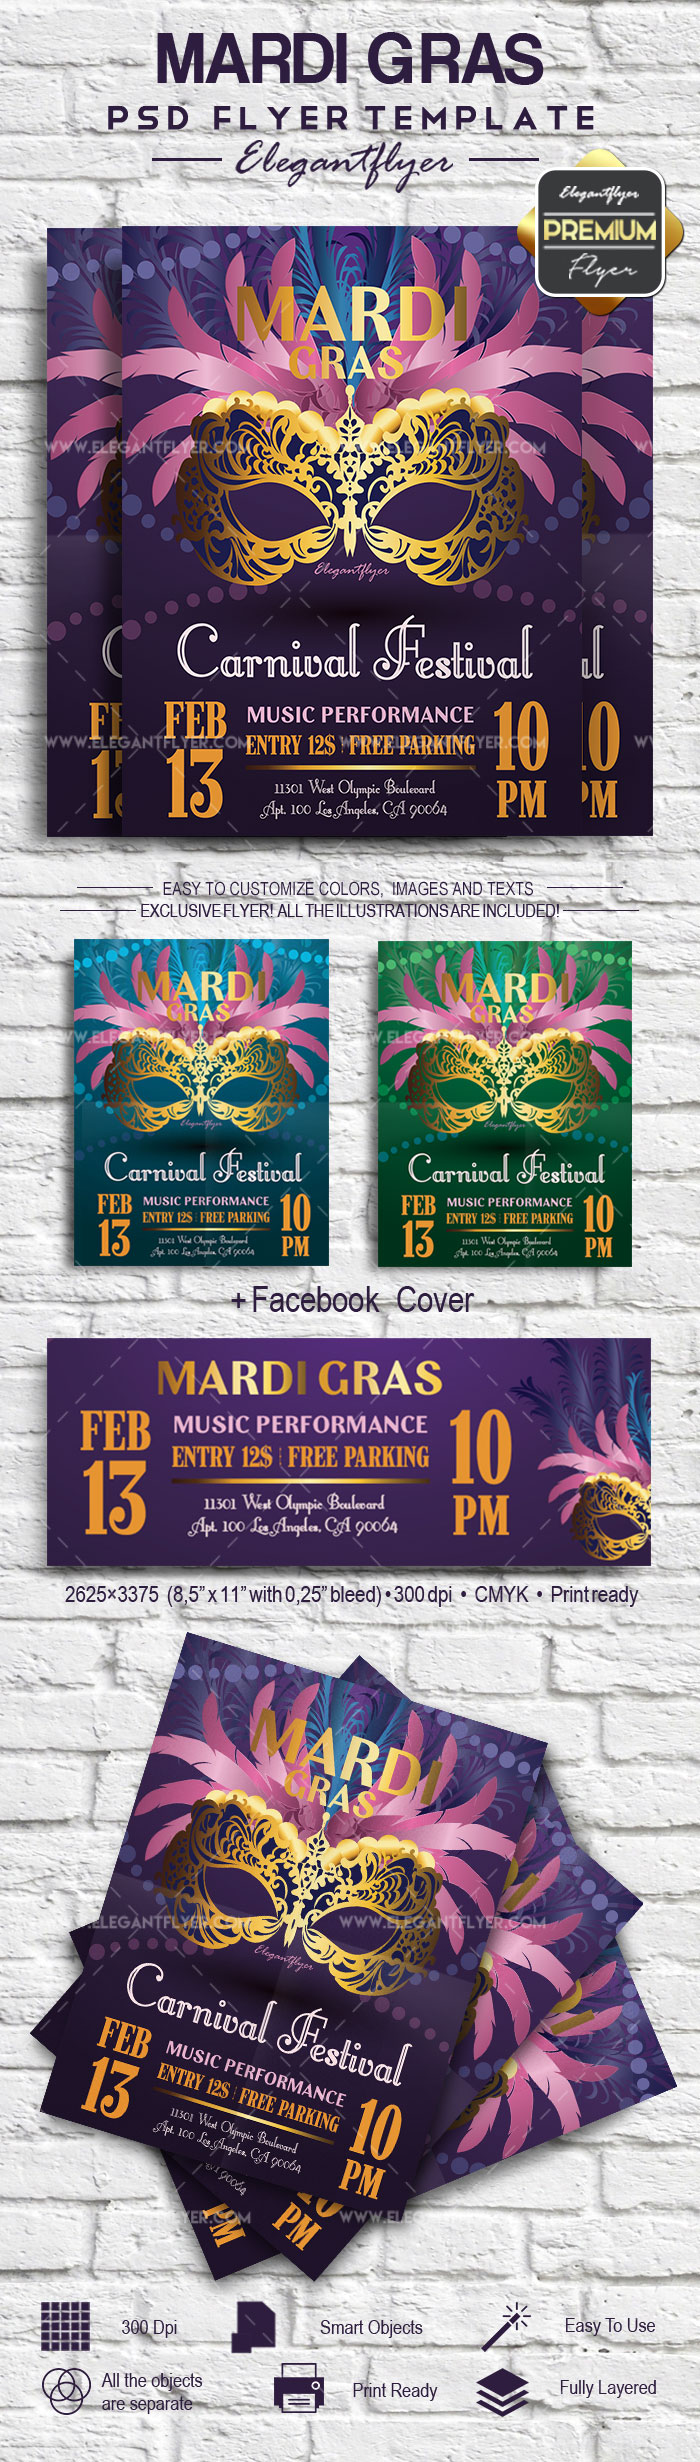 Party for Mardi Gras Festival